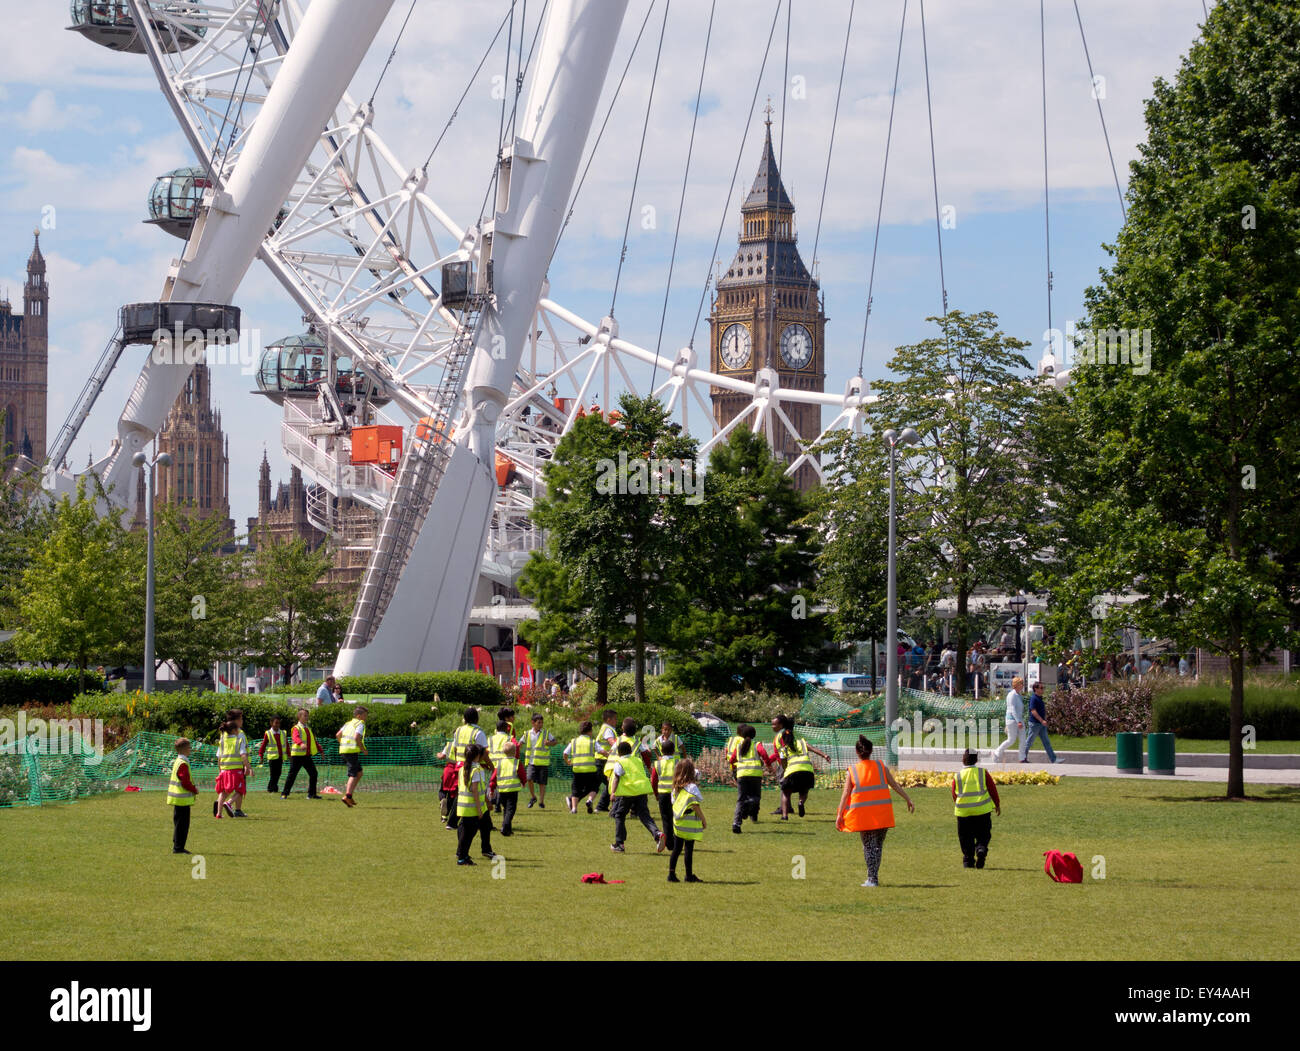 Children playing football outdoors in the Jubilee gardens, South bank, by the London Eye, Big Ben in the background, - Stock Image